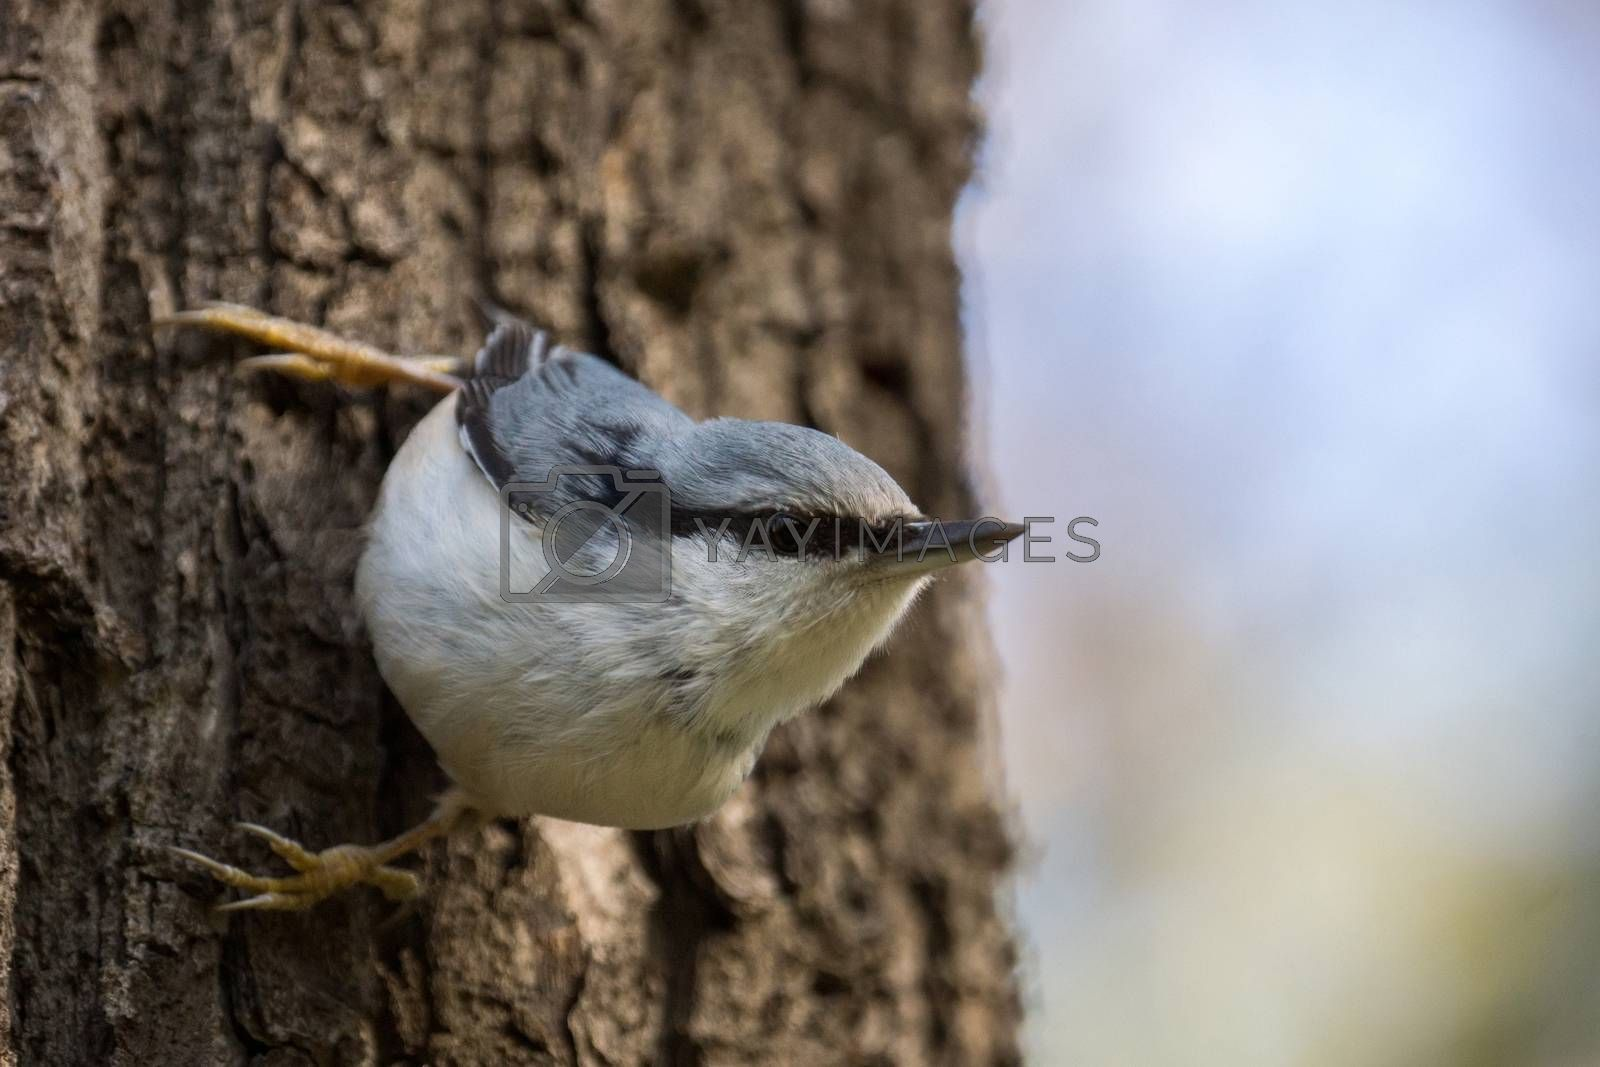 The photo shows a bird nuthatch